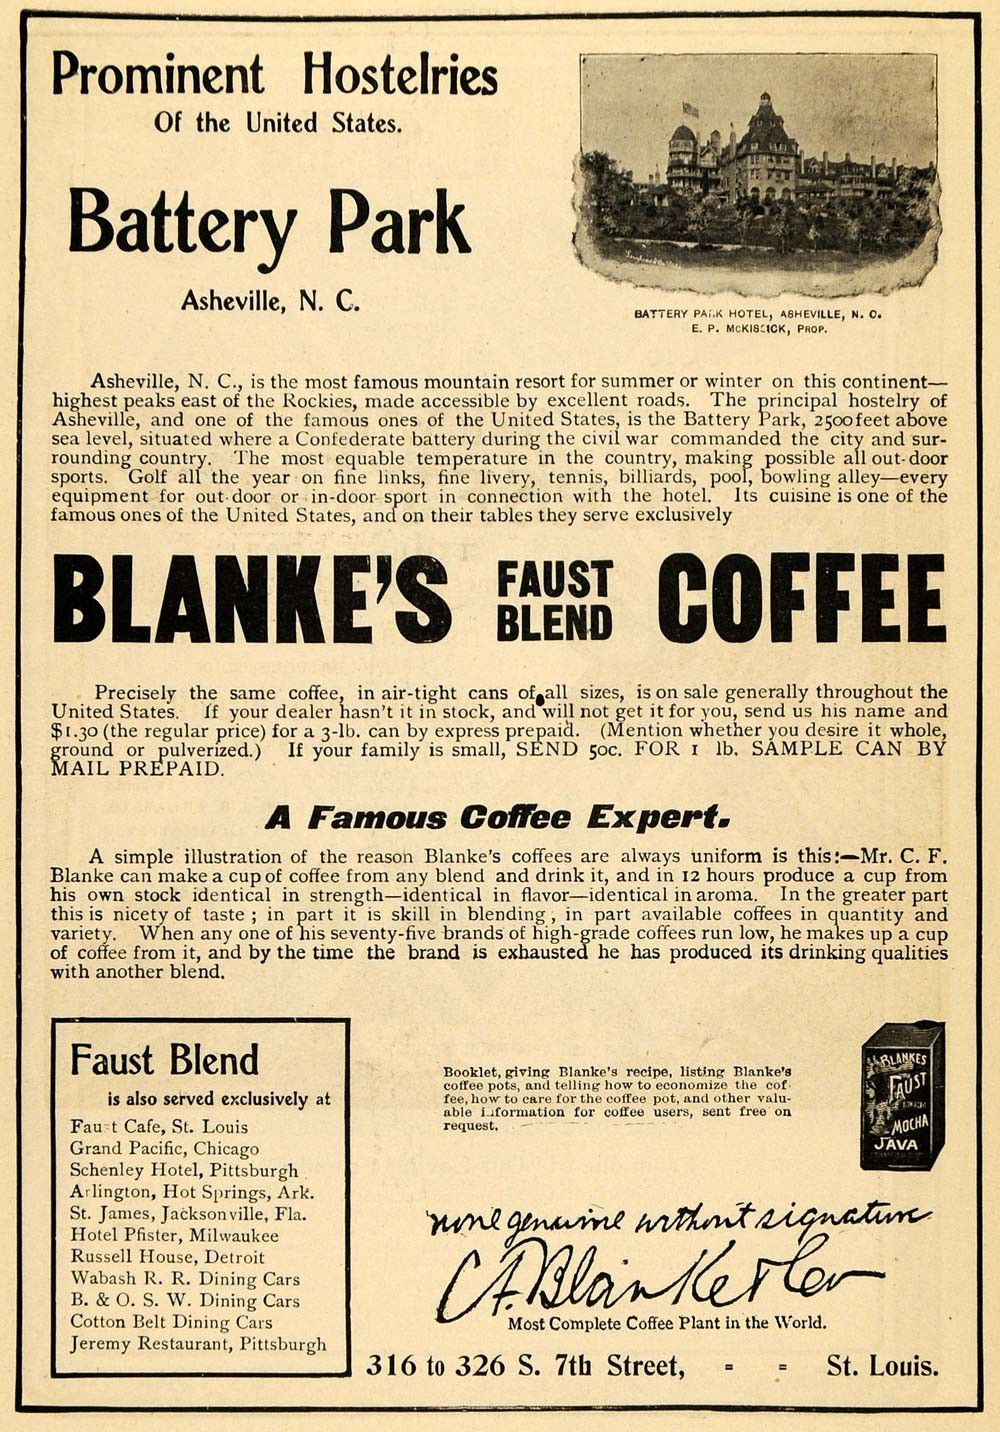 1900 Ad C F Blanke Co Coffee Drink Battery Park Hotel Original